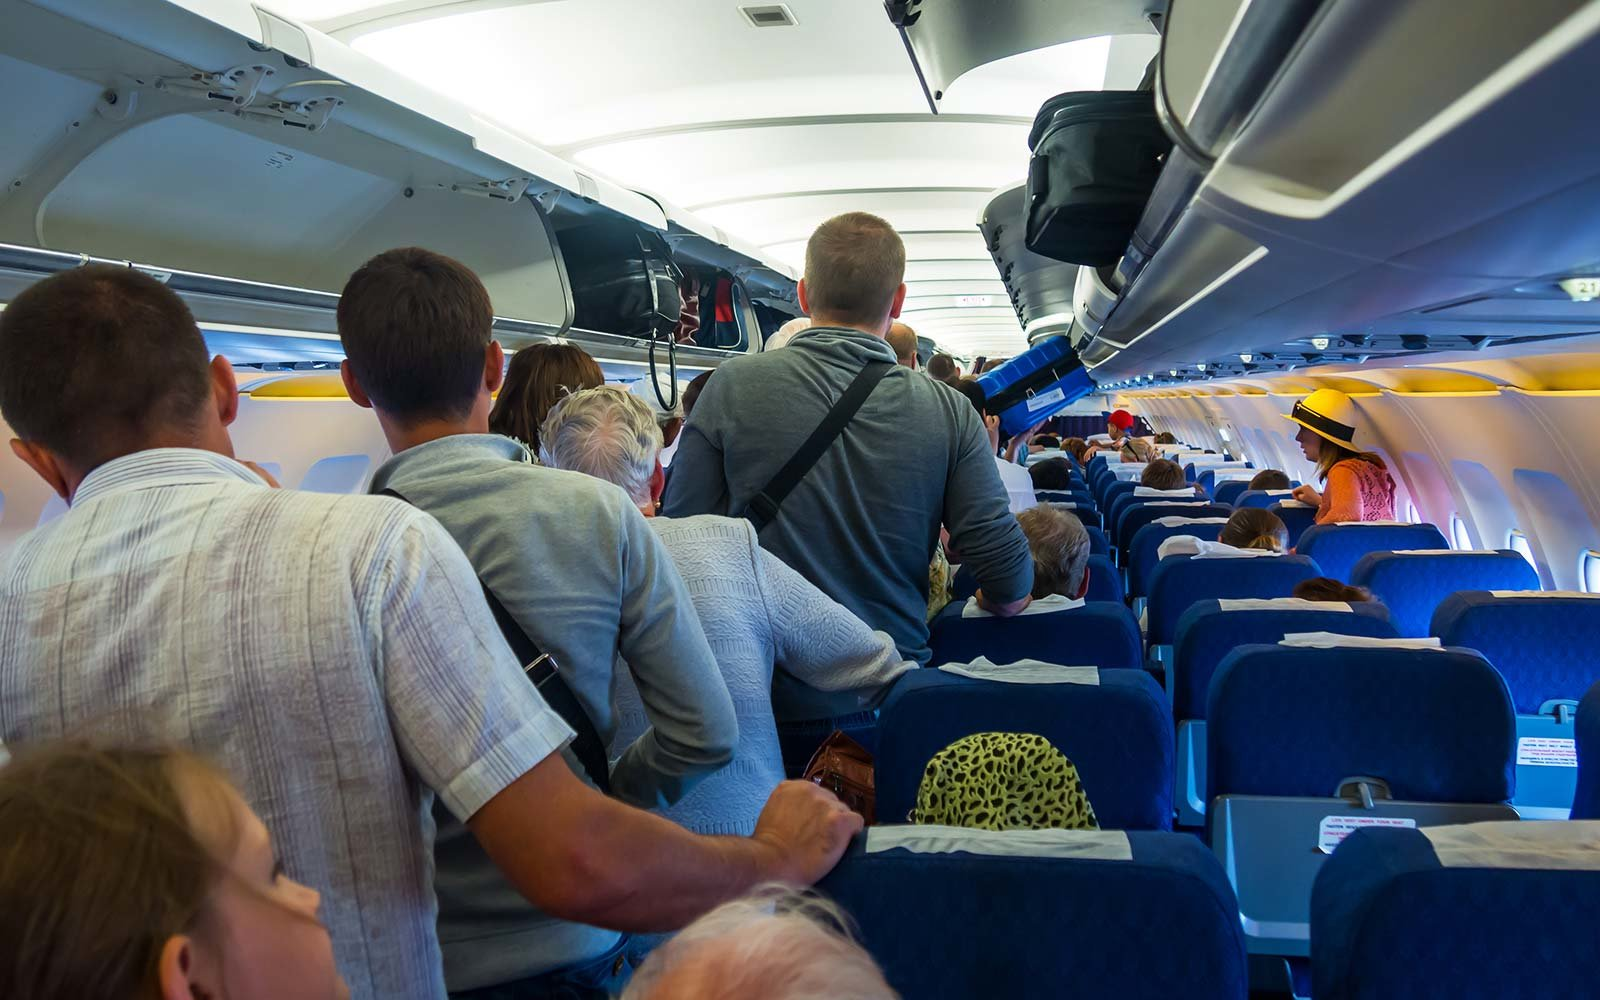 Passengers anxiously wait to disembark airplane